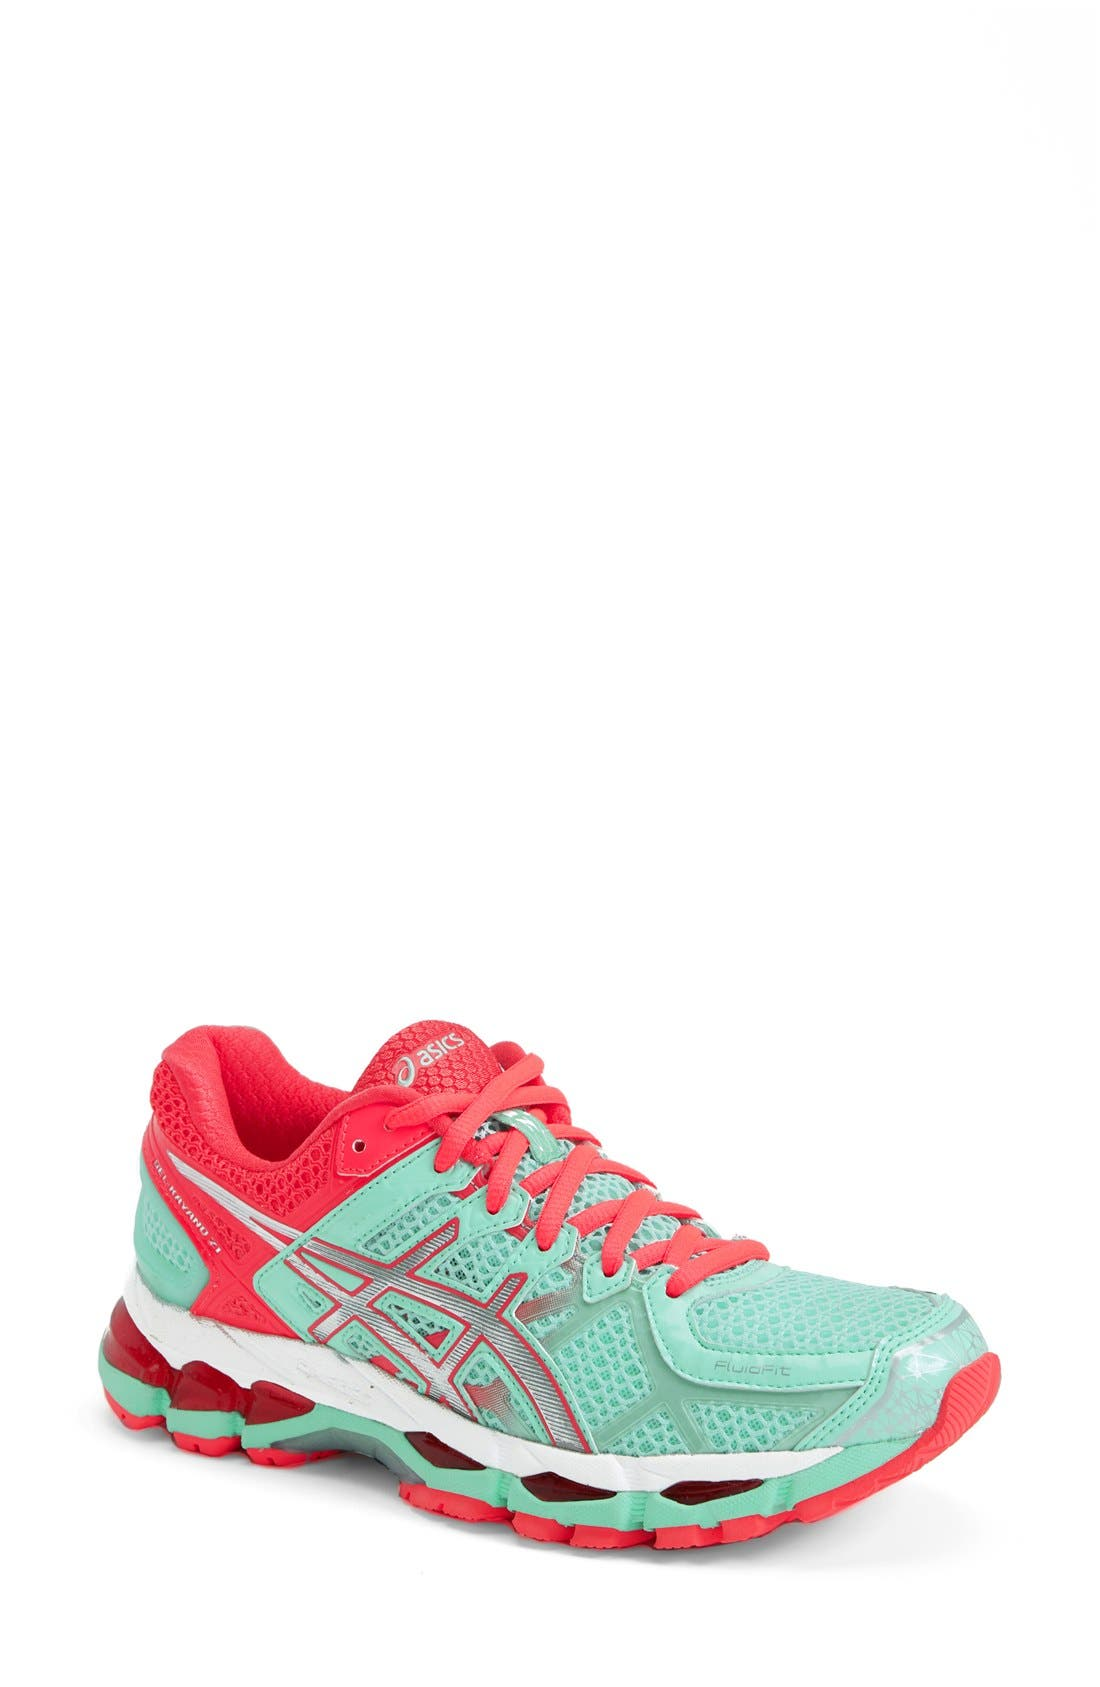 Main Image - ASICS® 'GEL-Kayano 21' Running Shoe (Women)(Regular Retail Price: $159.95)